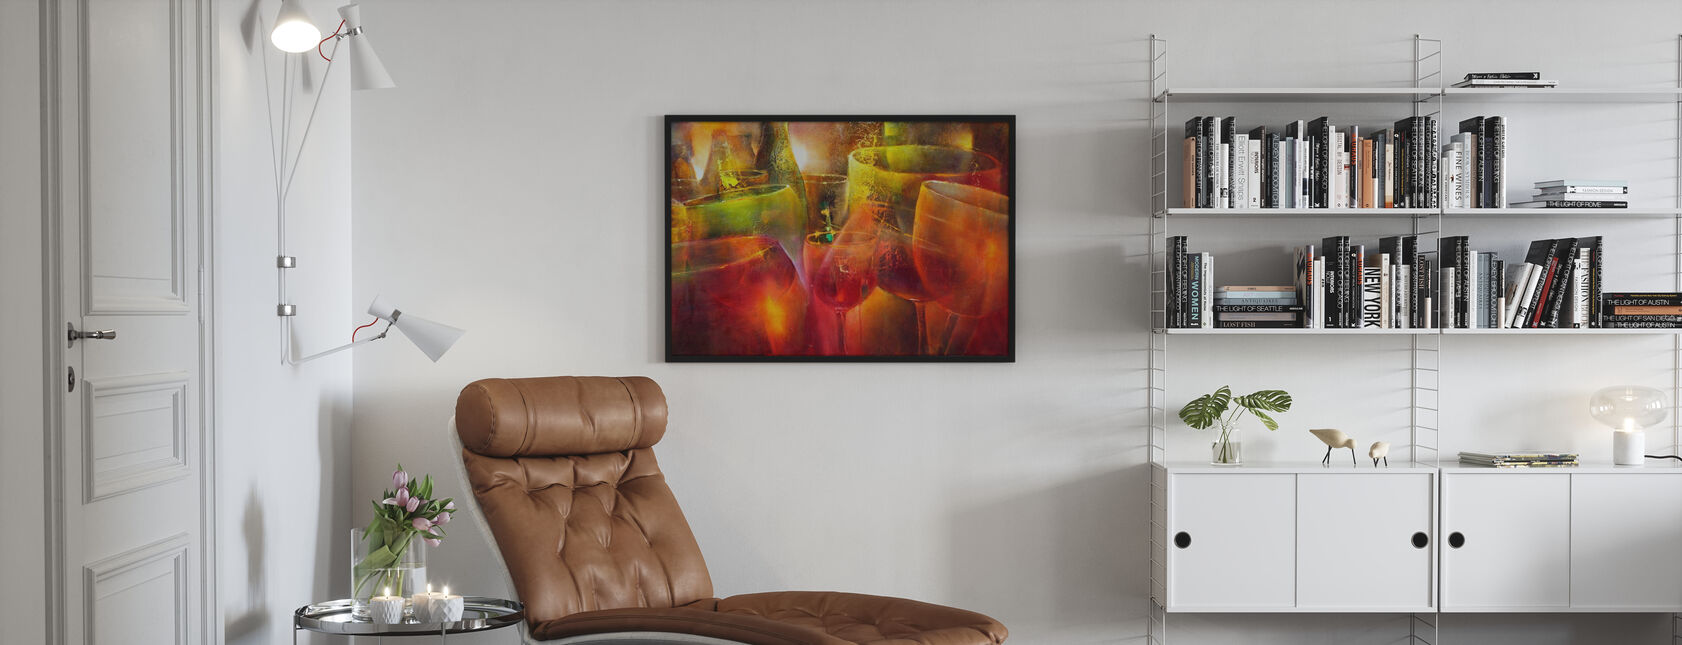 Late Hour - Poster - Living Room